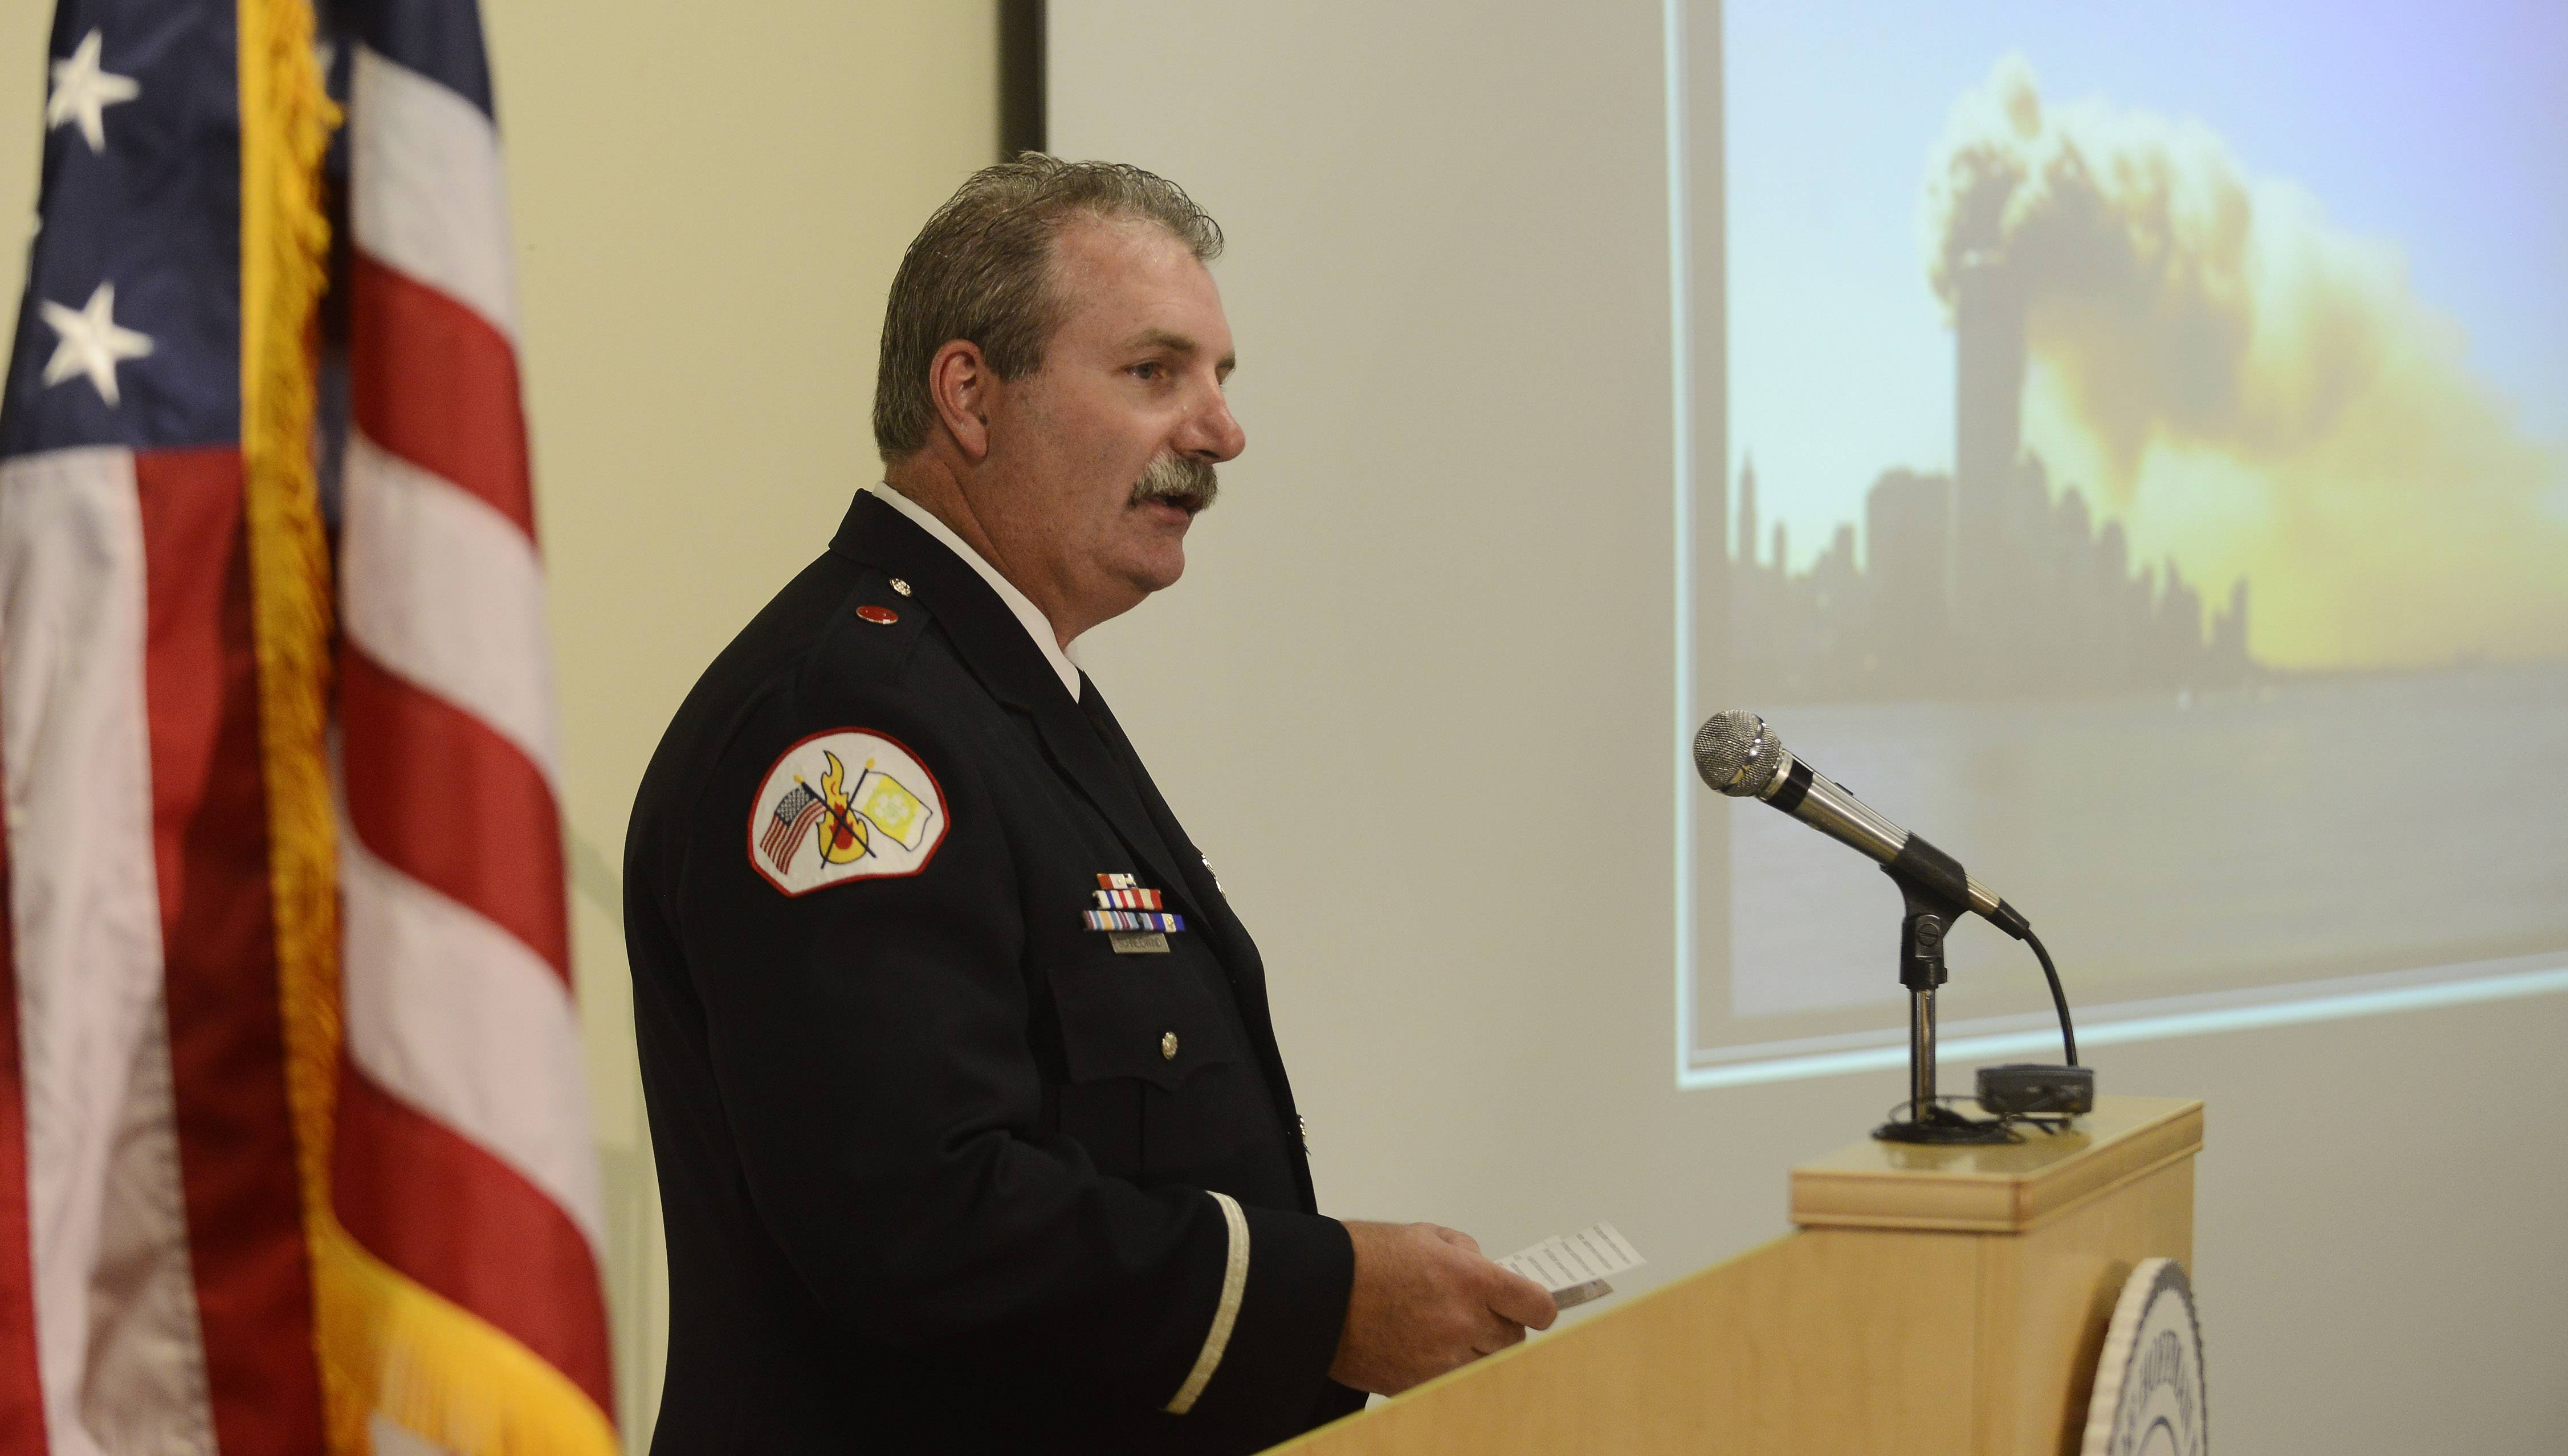 Special guest speaker Lt. John Schneidwind of the Schaumburg Fire Department talks about his experiences at Ground Zero in the days following the September 11, 2001 terrorist attacks, during the Village of Hoffman Estates memorial service held Wednesday evening at the village hall.